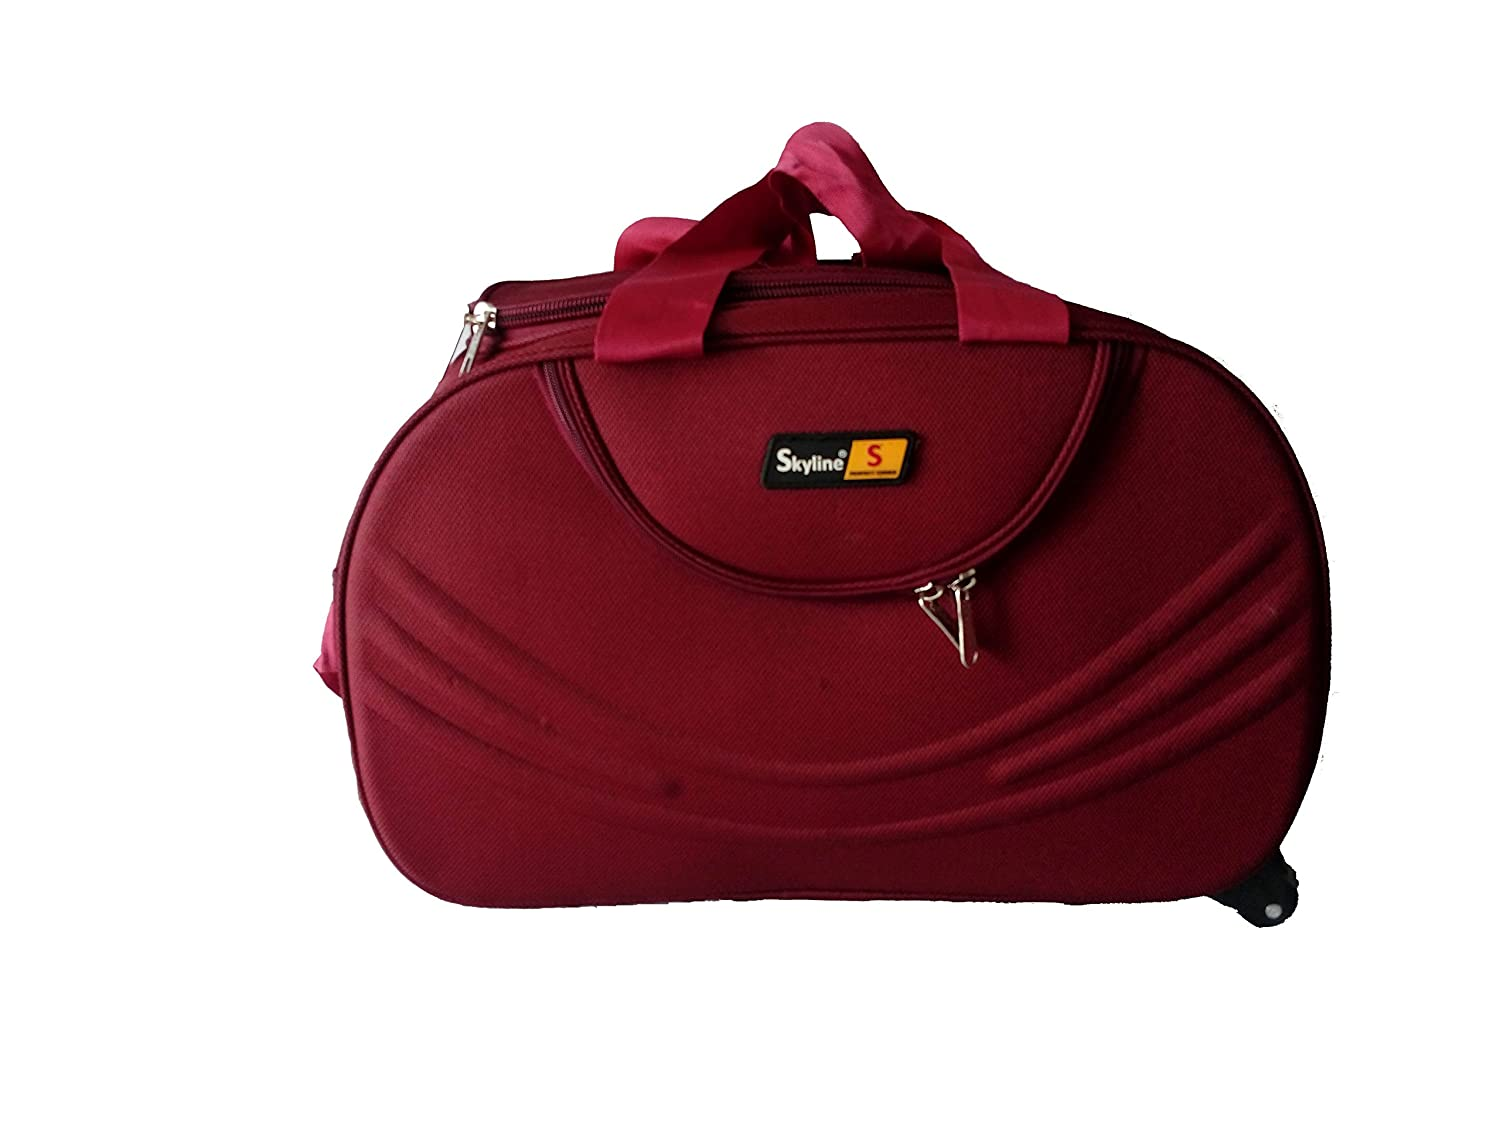 ef0ca3be2f Skyline Polyester 1220 Cms Red Soft Duffle Bag  Amazon.in  Bags ...